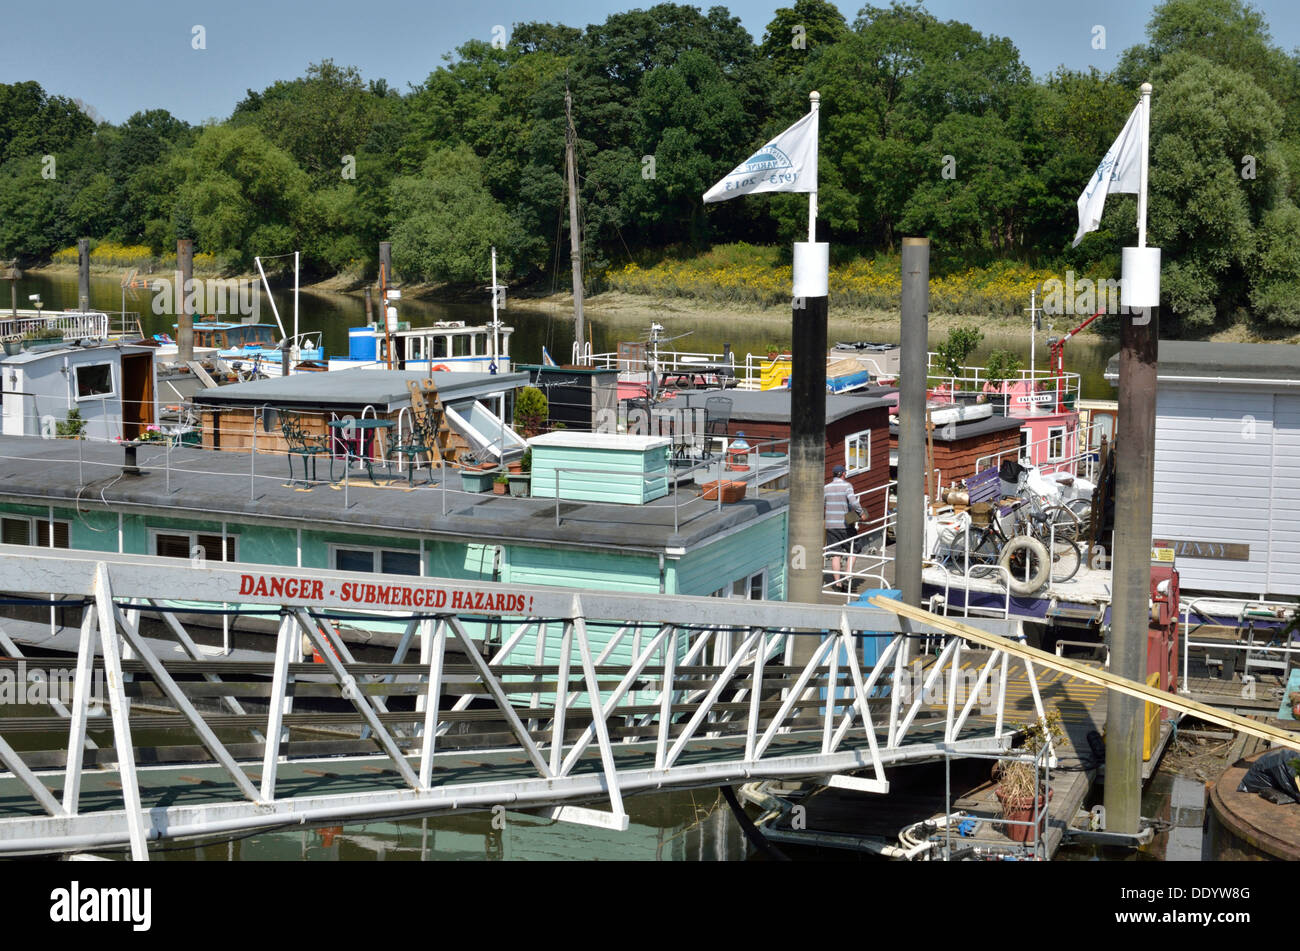 Houseboats on the River Thames at Isleworth, London, UK Stock Photo